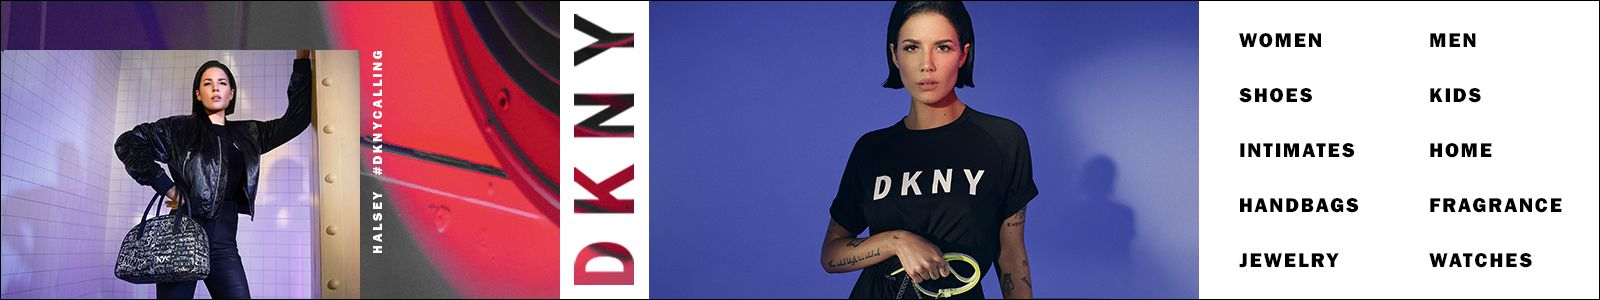 Halsey #Dknycalling, Dkny, Women, Men, Shoes, Kids, Intimates, Home, Handbags, Fragrance, Jewelry, Watches